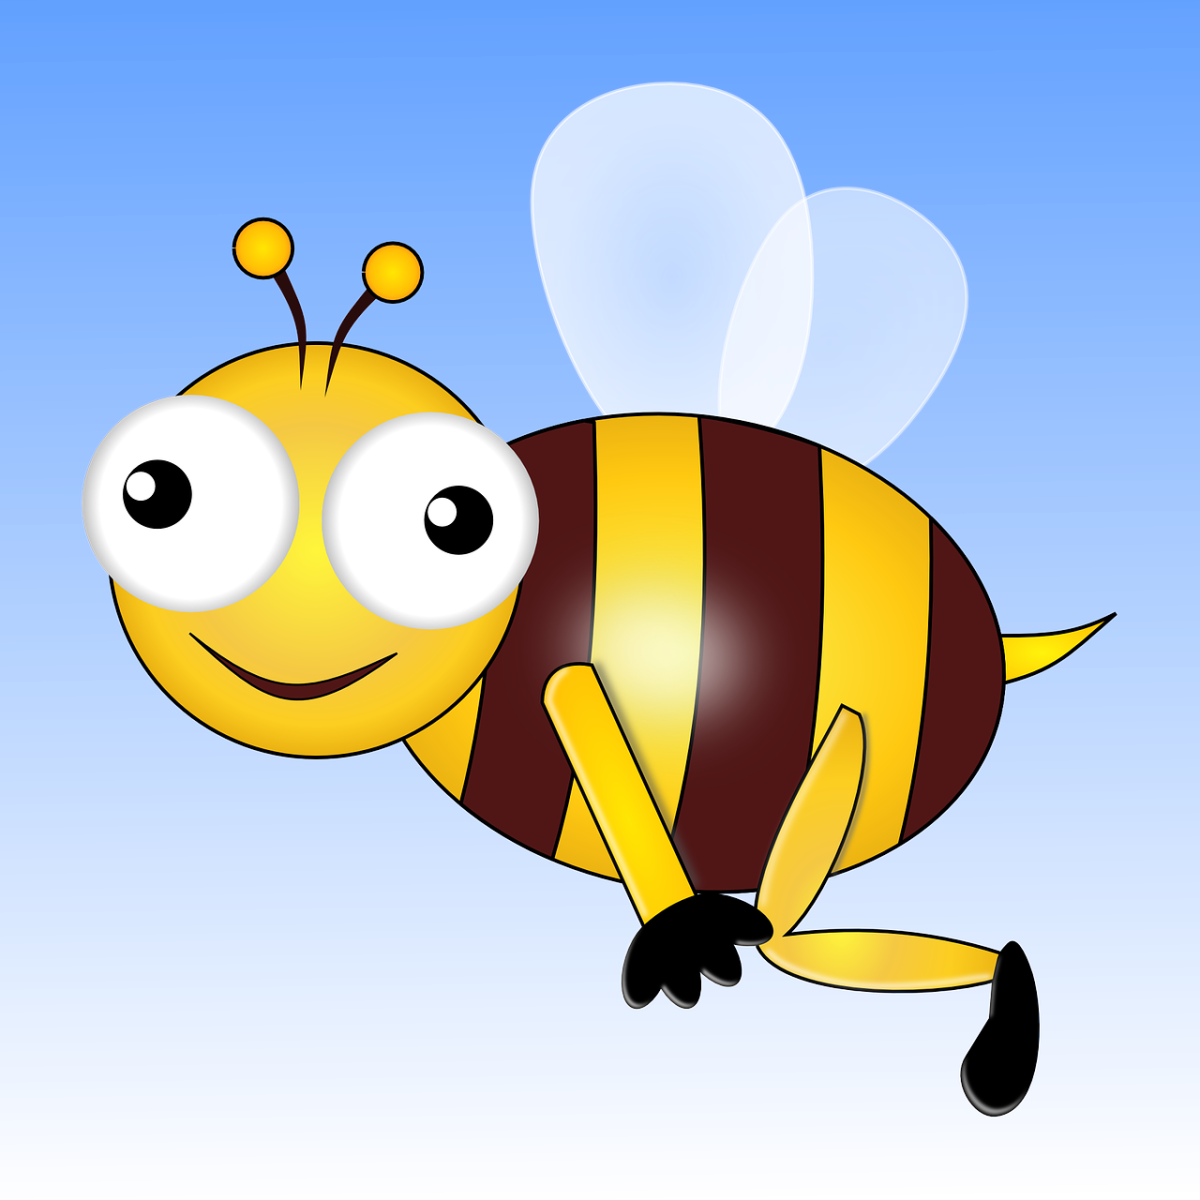 A cute illustration of a honey bee.